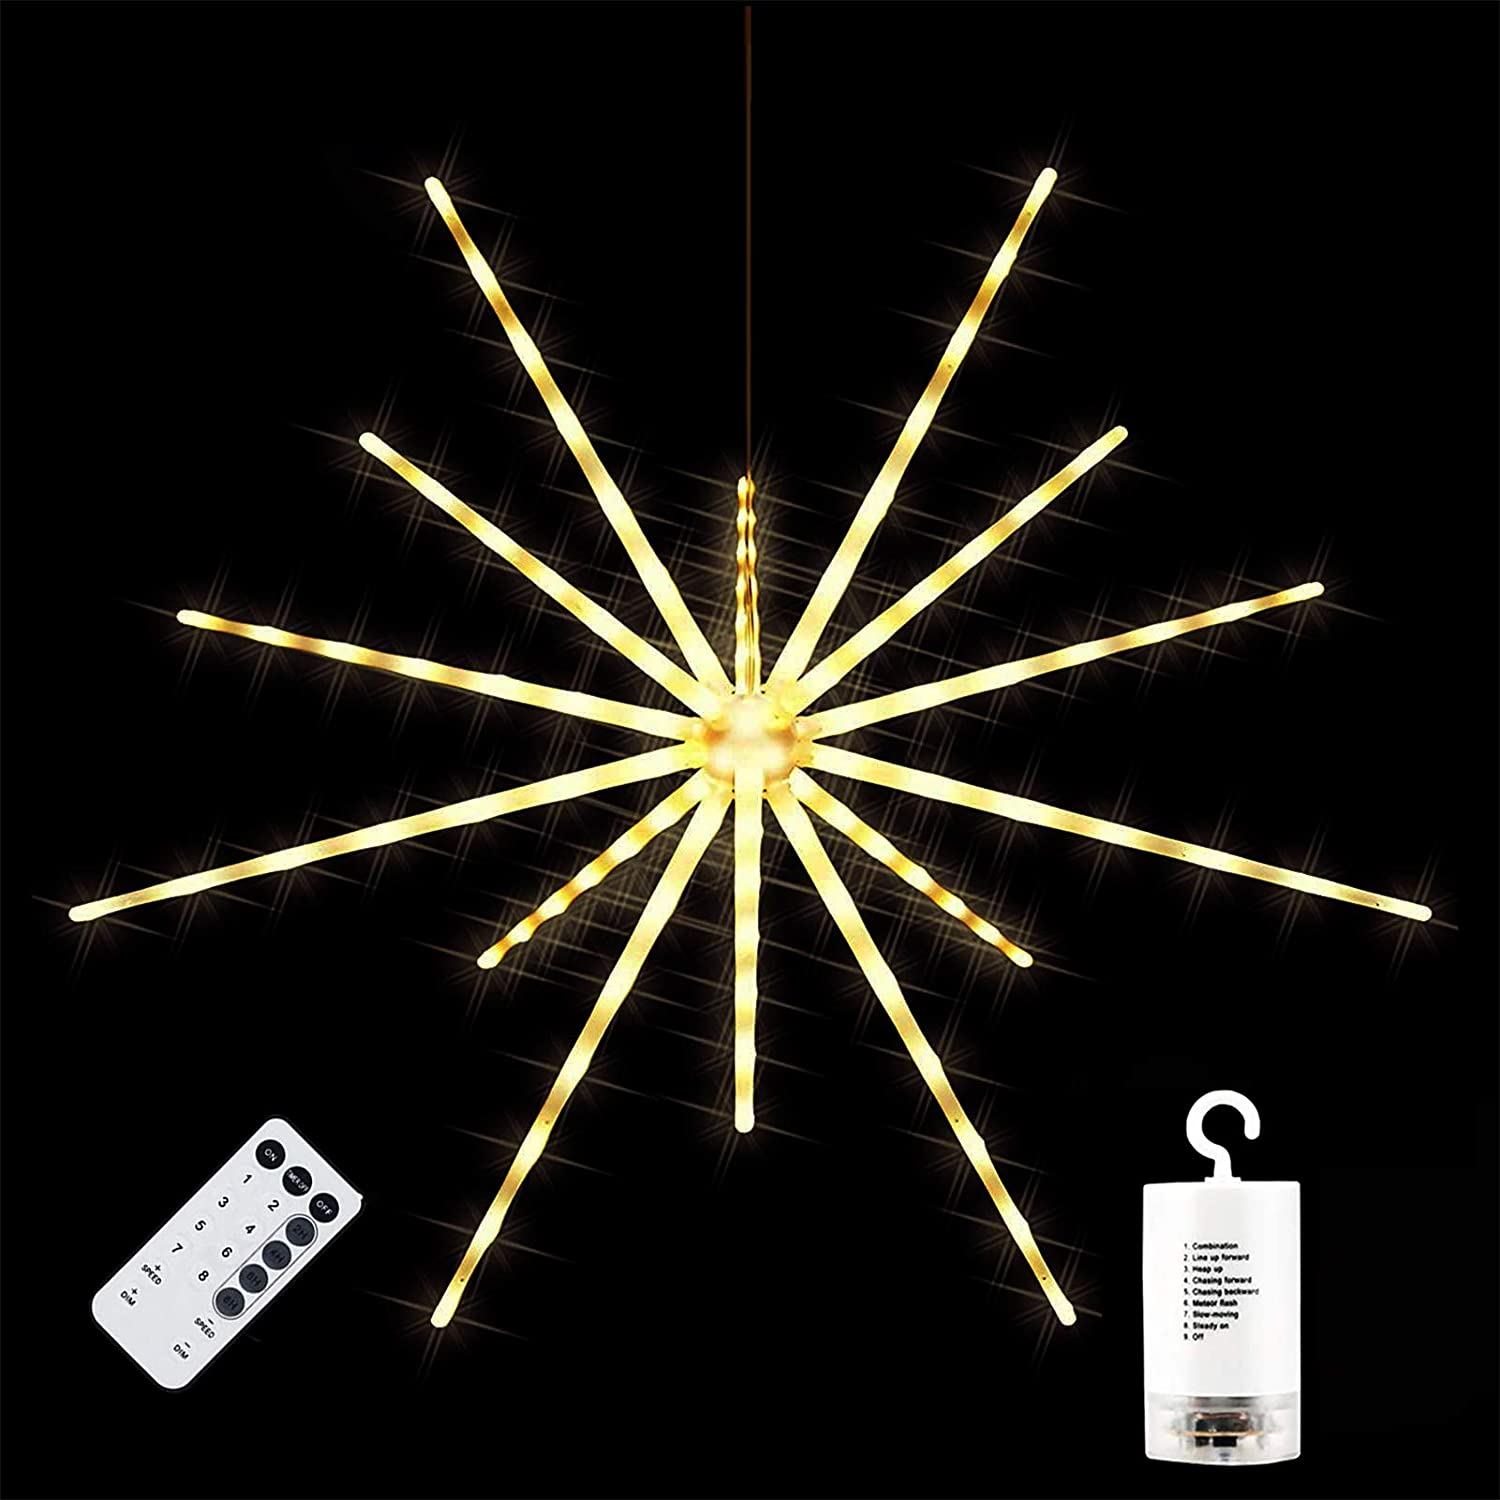 112 LED Starburst Sphere Lights, Battery Operated Firework Lights, 8 Flashing Modes Dimmable Speed Remote Control, Waterproof Fairy Copper Wire Lights, Hanging Lights Christmas Decor(Warm White)